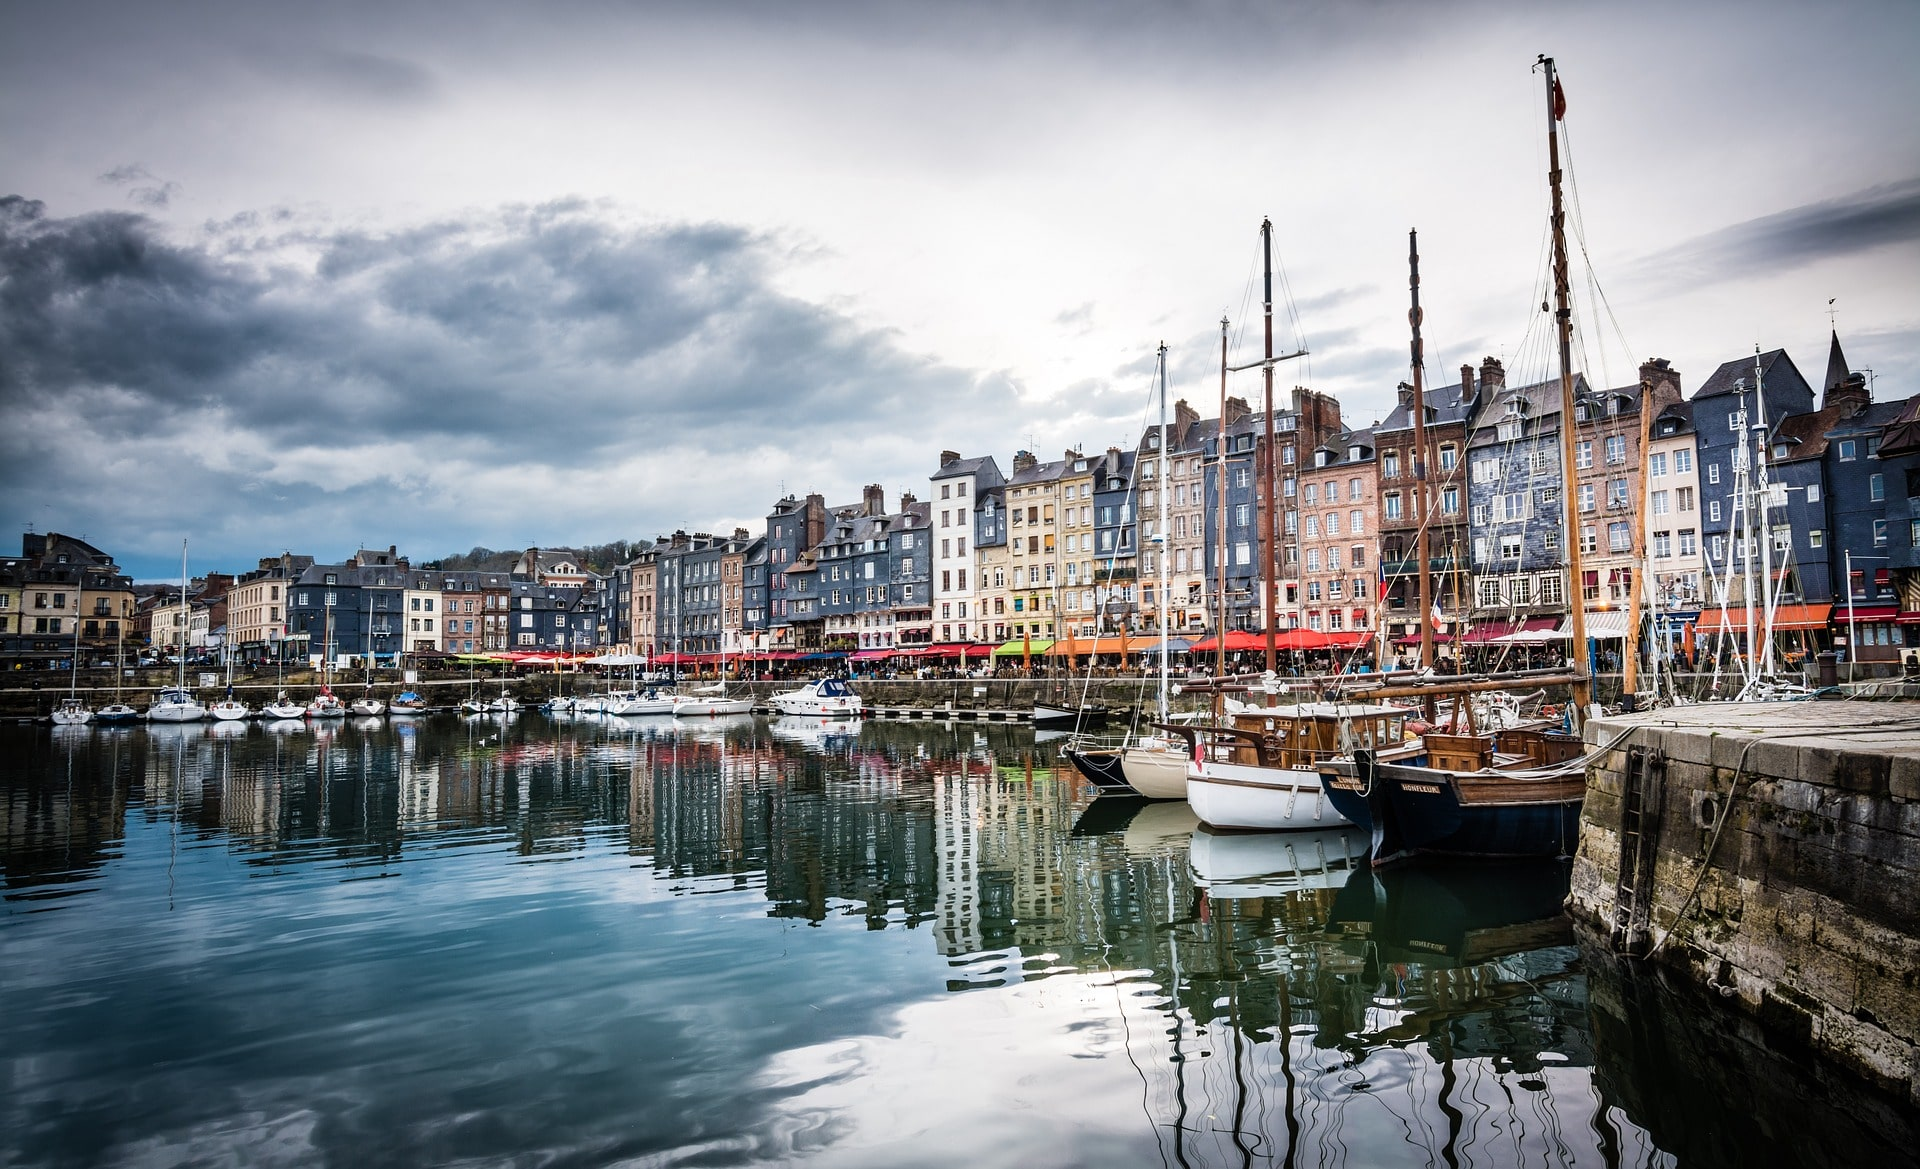 Normandy is one of the most amazing places to visit in France